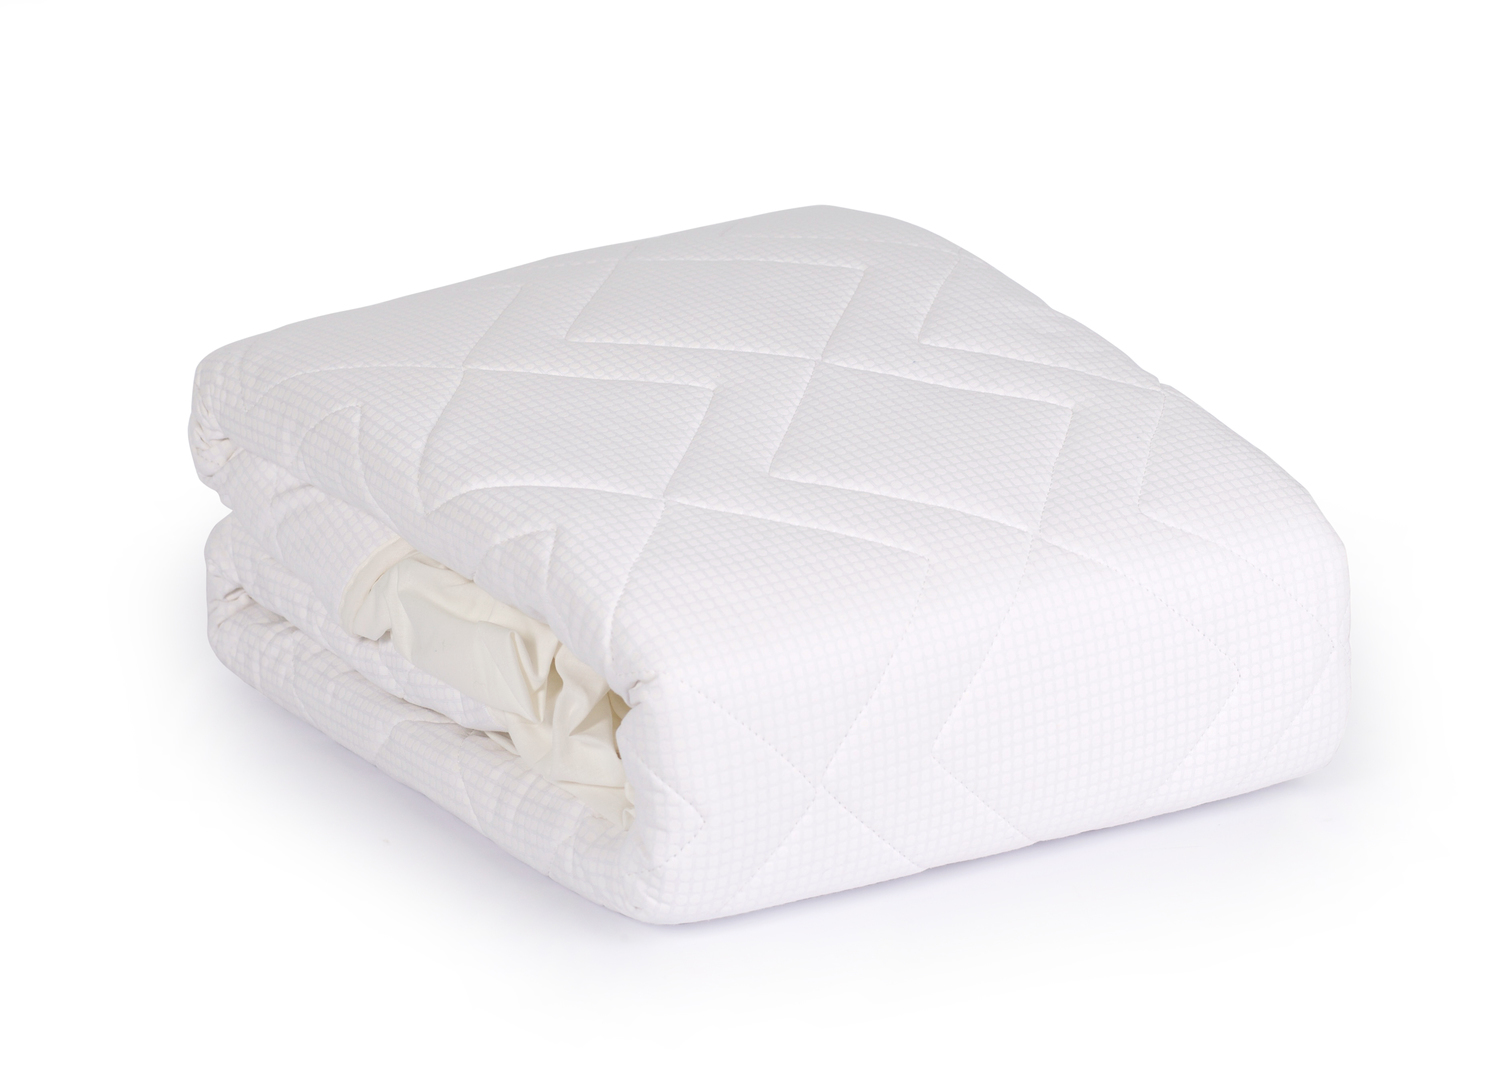 Velfont Outlast Thermo Regulated Quilted Mattress Protector